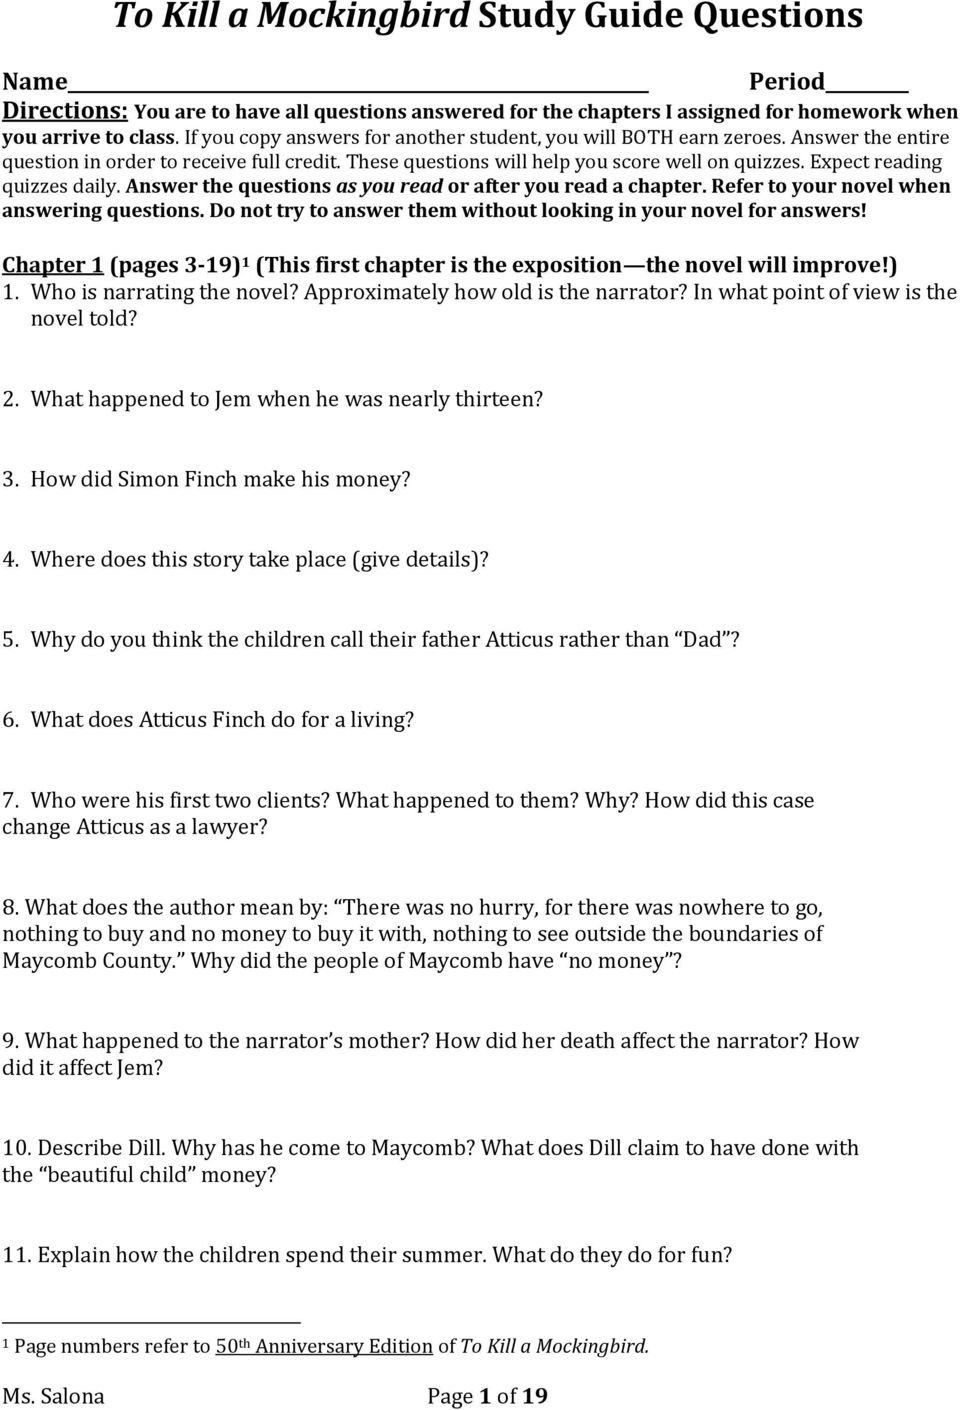 to kill a mockingbird study guide questions pdf answer the questions as you or after you a chapter refer to your